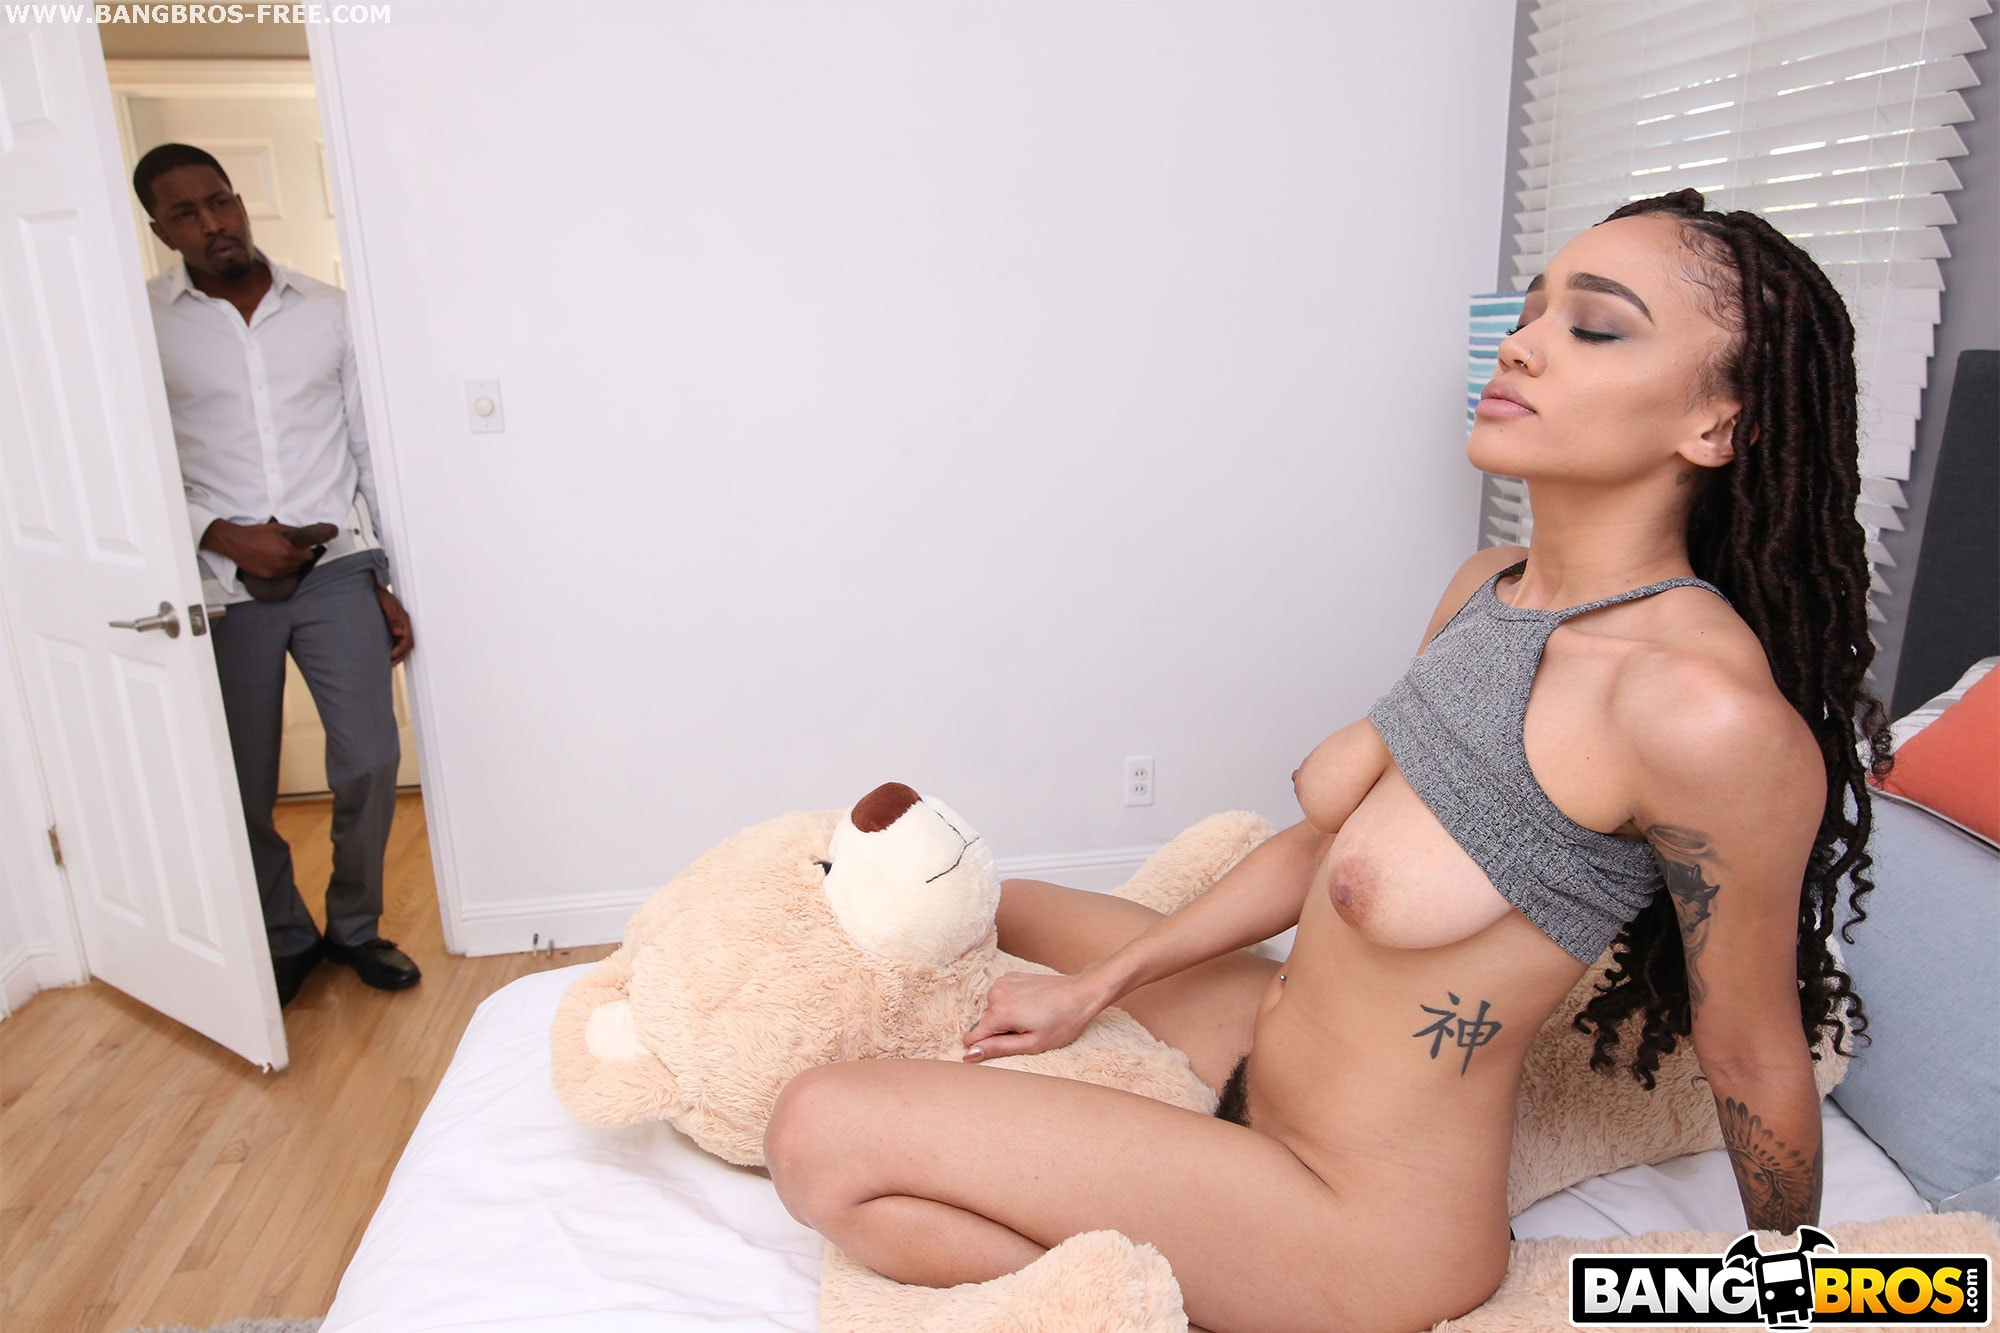 Bangbros 'Julie Kay Rides Her Step-father's Giant Cock' starring Julie Kay (photo 162)